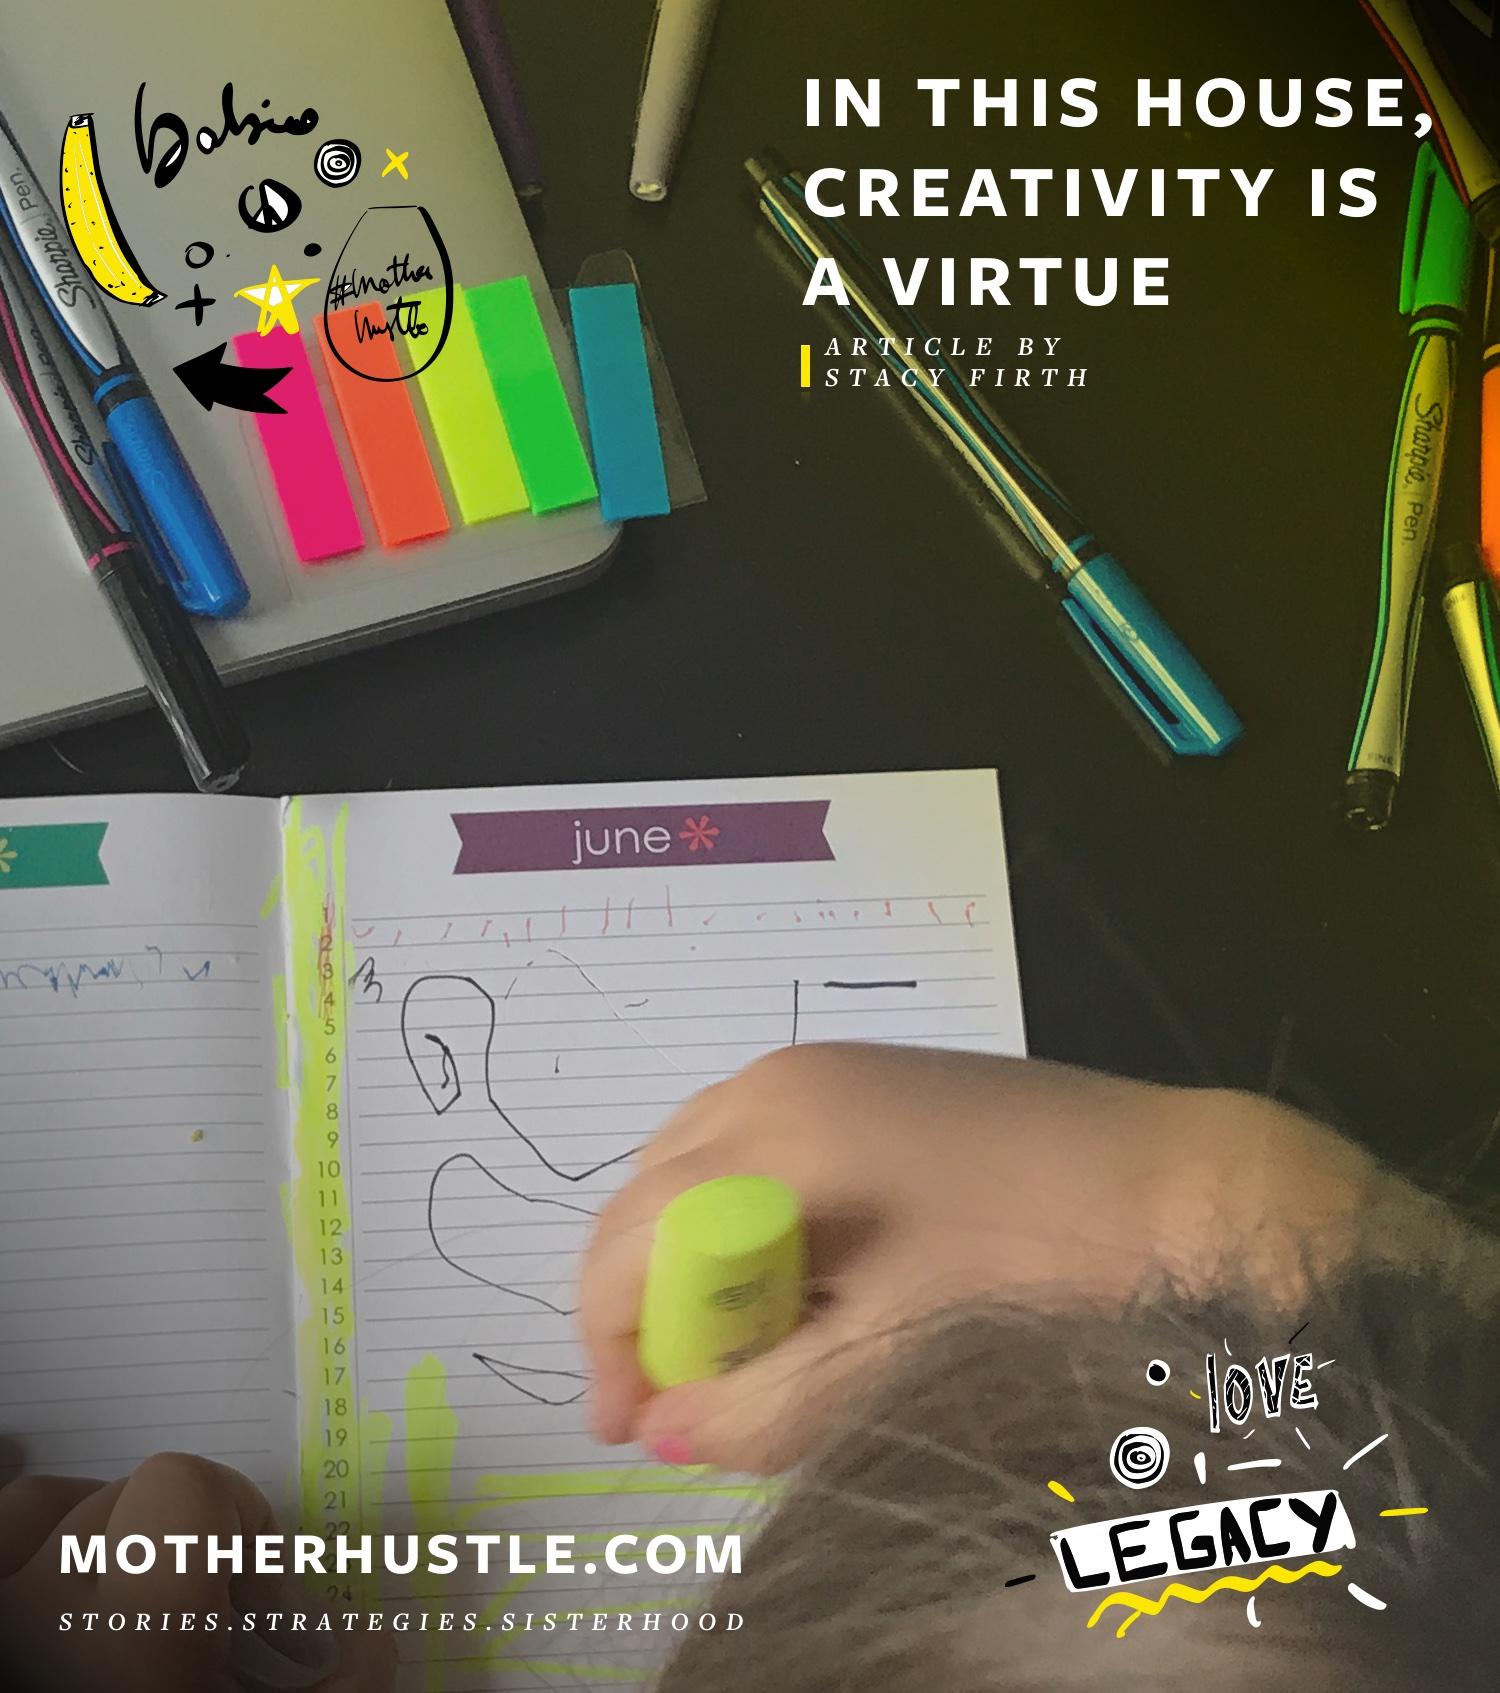 In This House, Creativity Is A Virtue - Stacy Firth MotherHustle